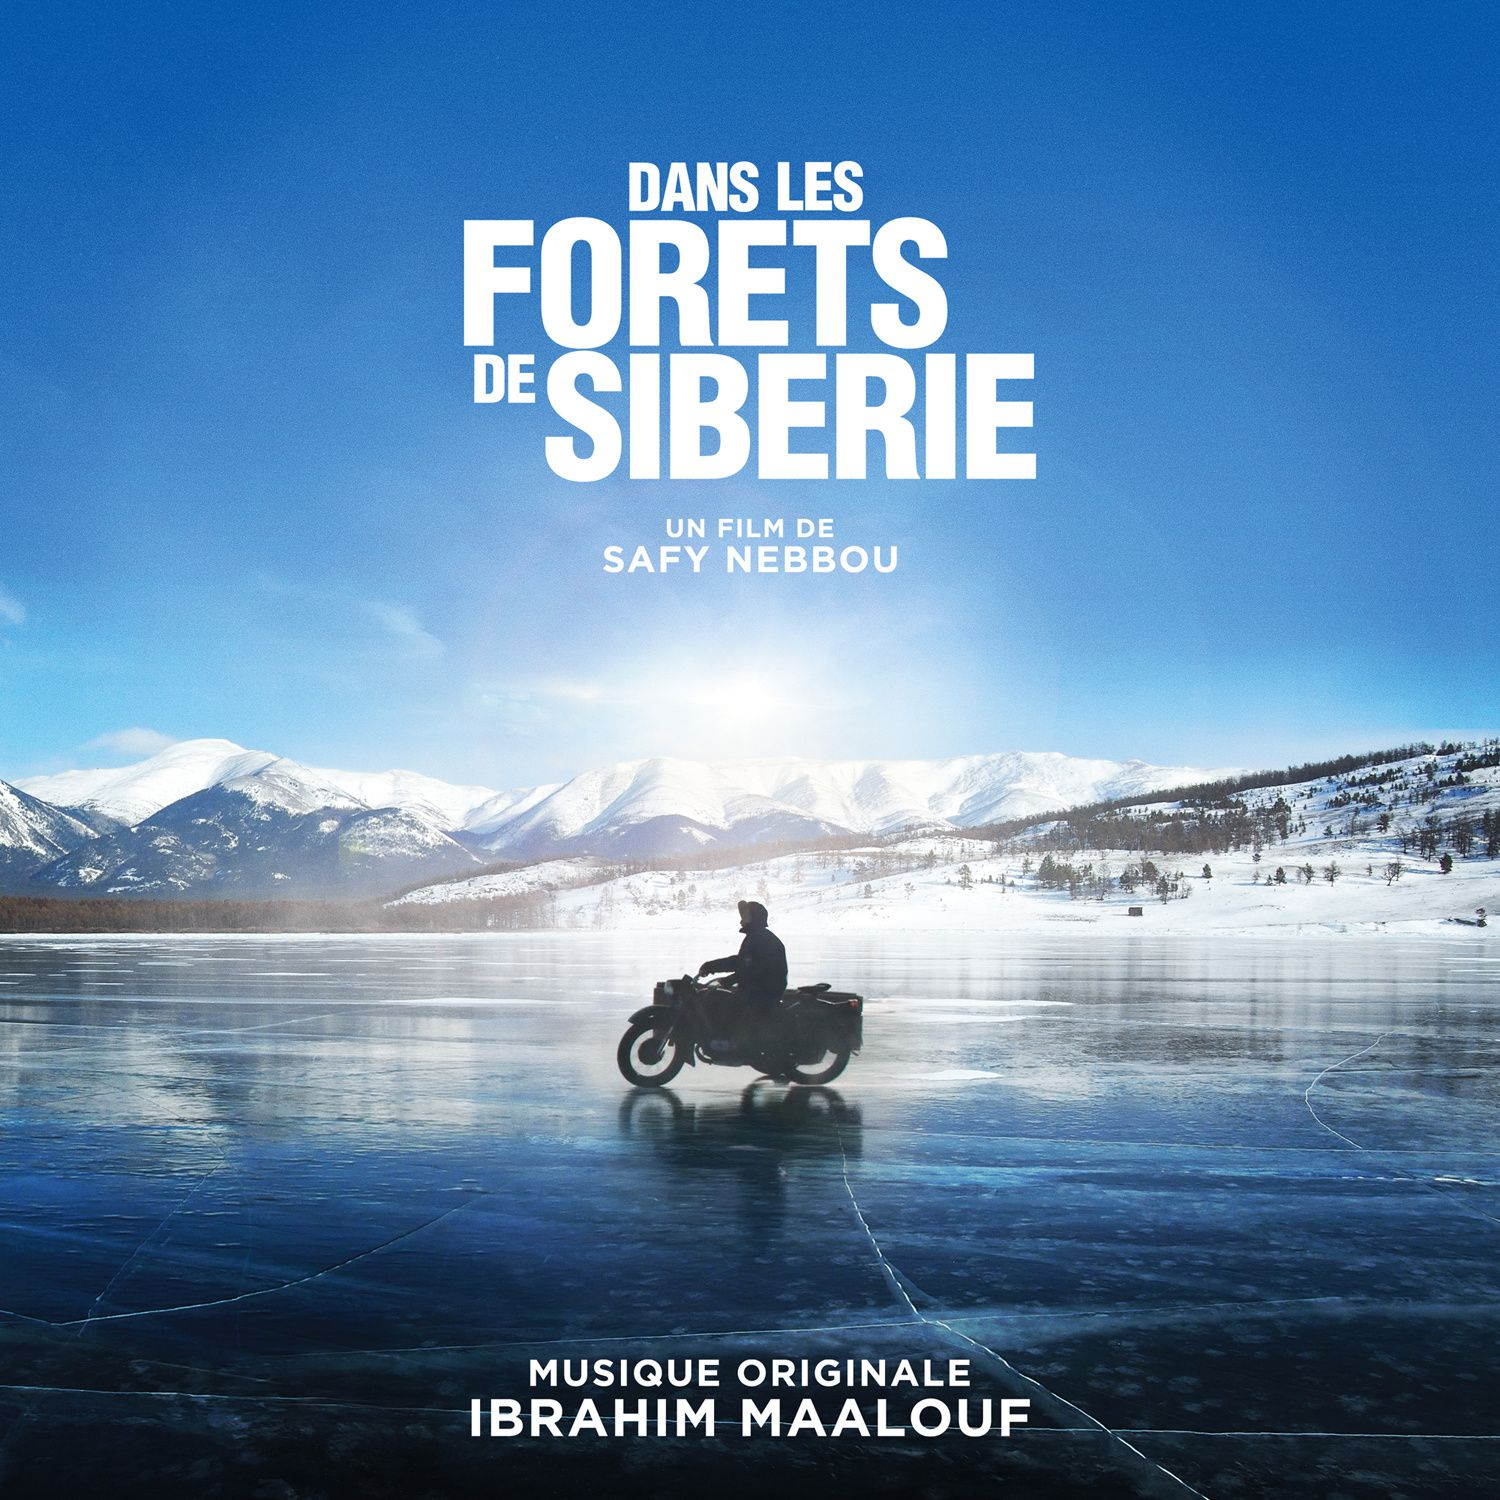 ibrahim maalouf, red & black light, dans les forets de siberie